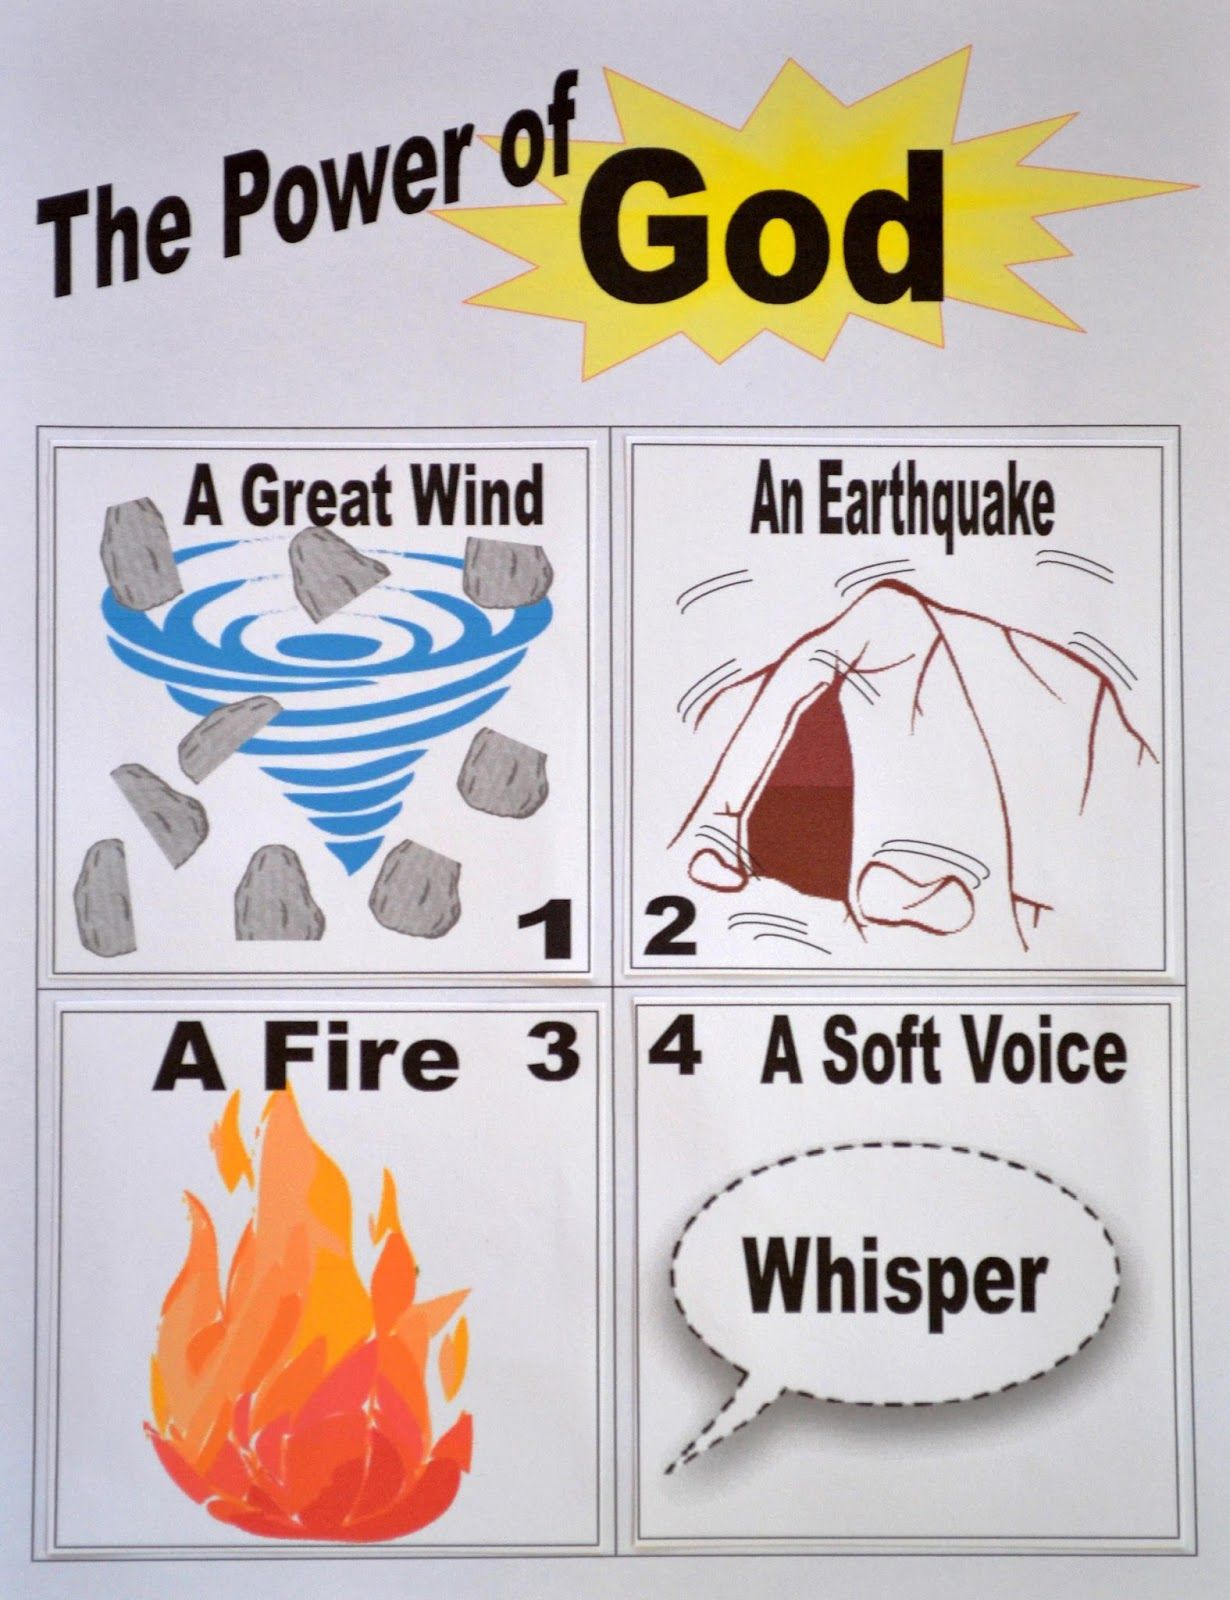 Worksheets Earthquake Worksheet power of god worksheet printable wind earthquake fire gods whisper